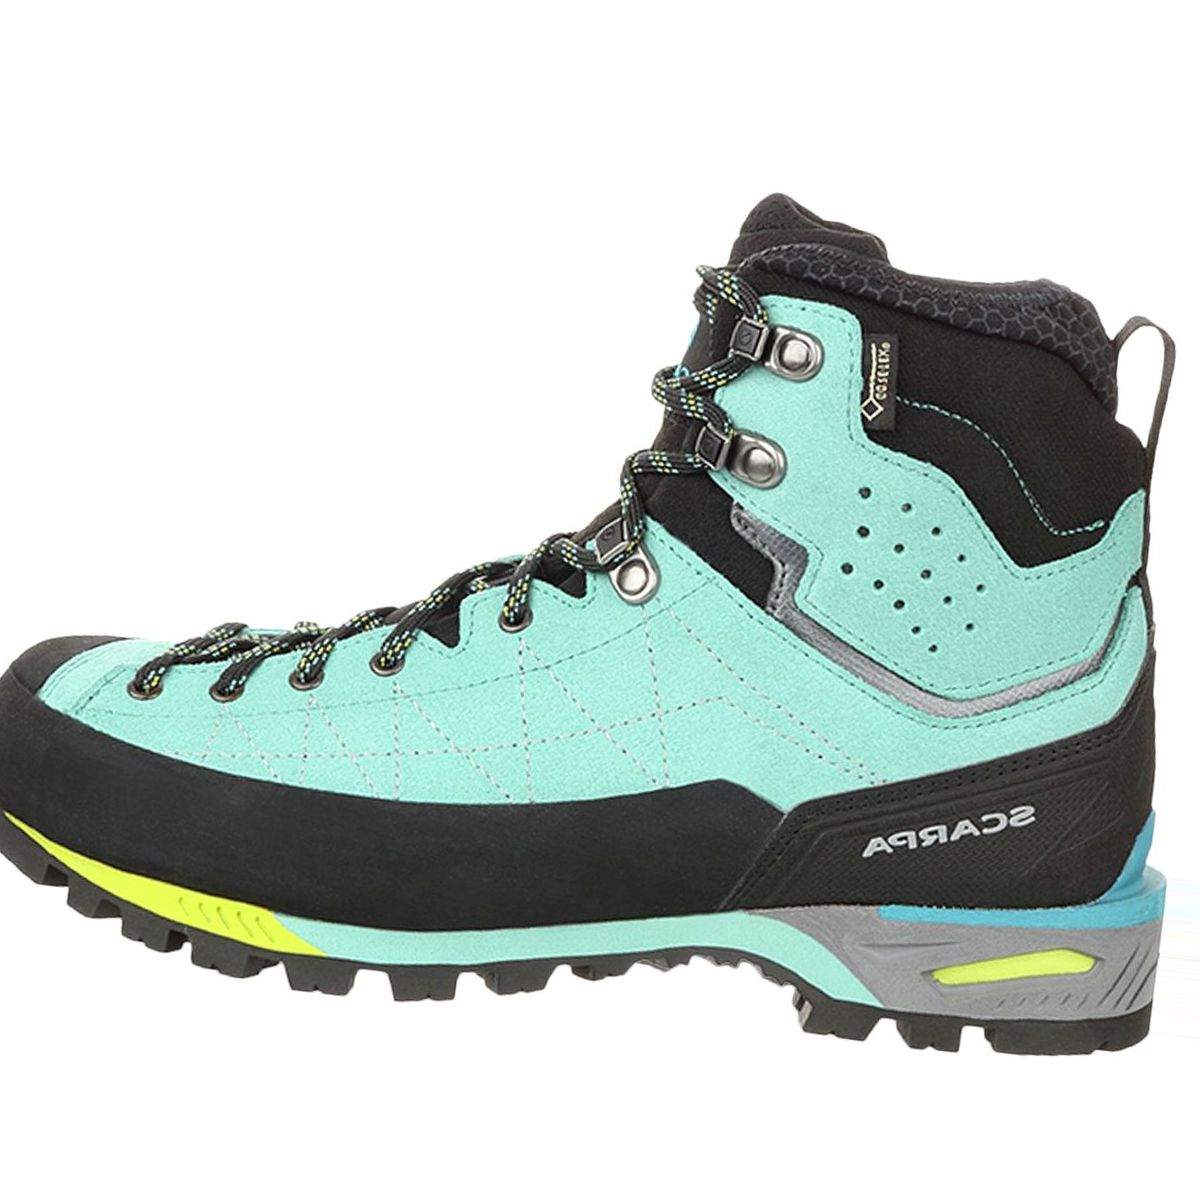 Scarpa Zodiac Tech GTX Mountaineering Boot - Women's